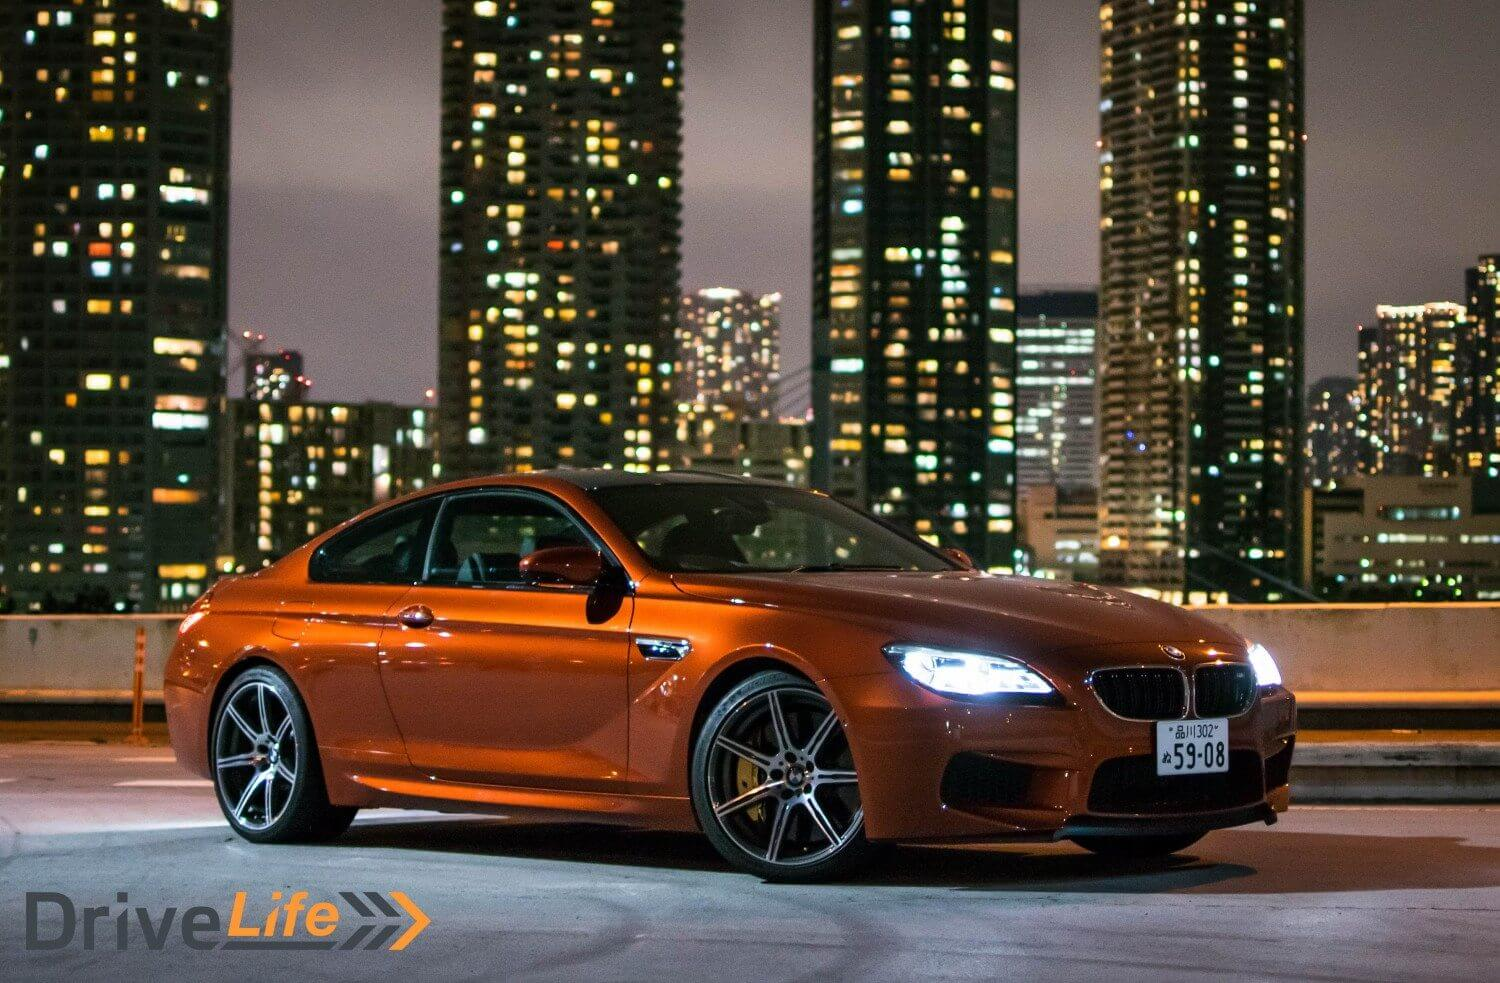 drive-life-nz-car-review-bmw-m6-competition-2016-09